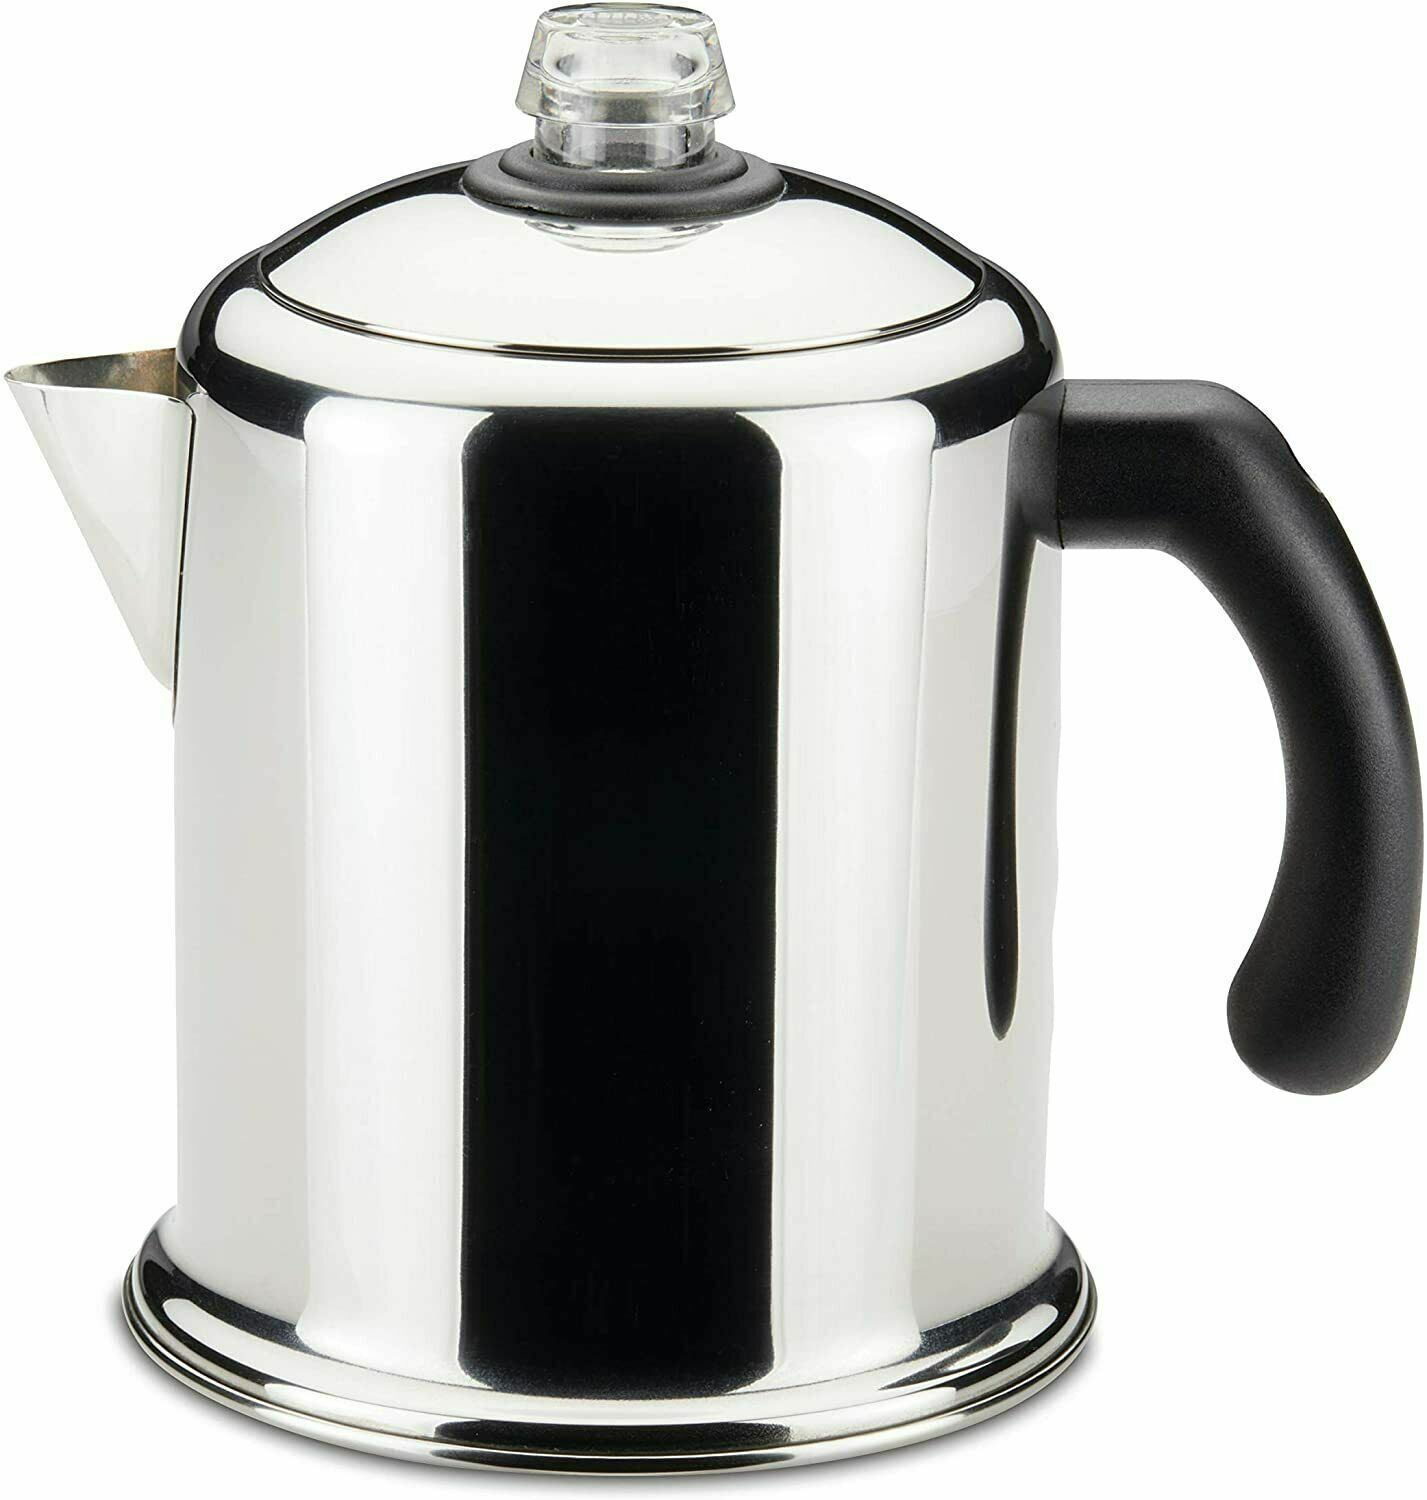 8 Cup Stovetop Percolator Coffee Pot Maker Camping Home Kitc